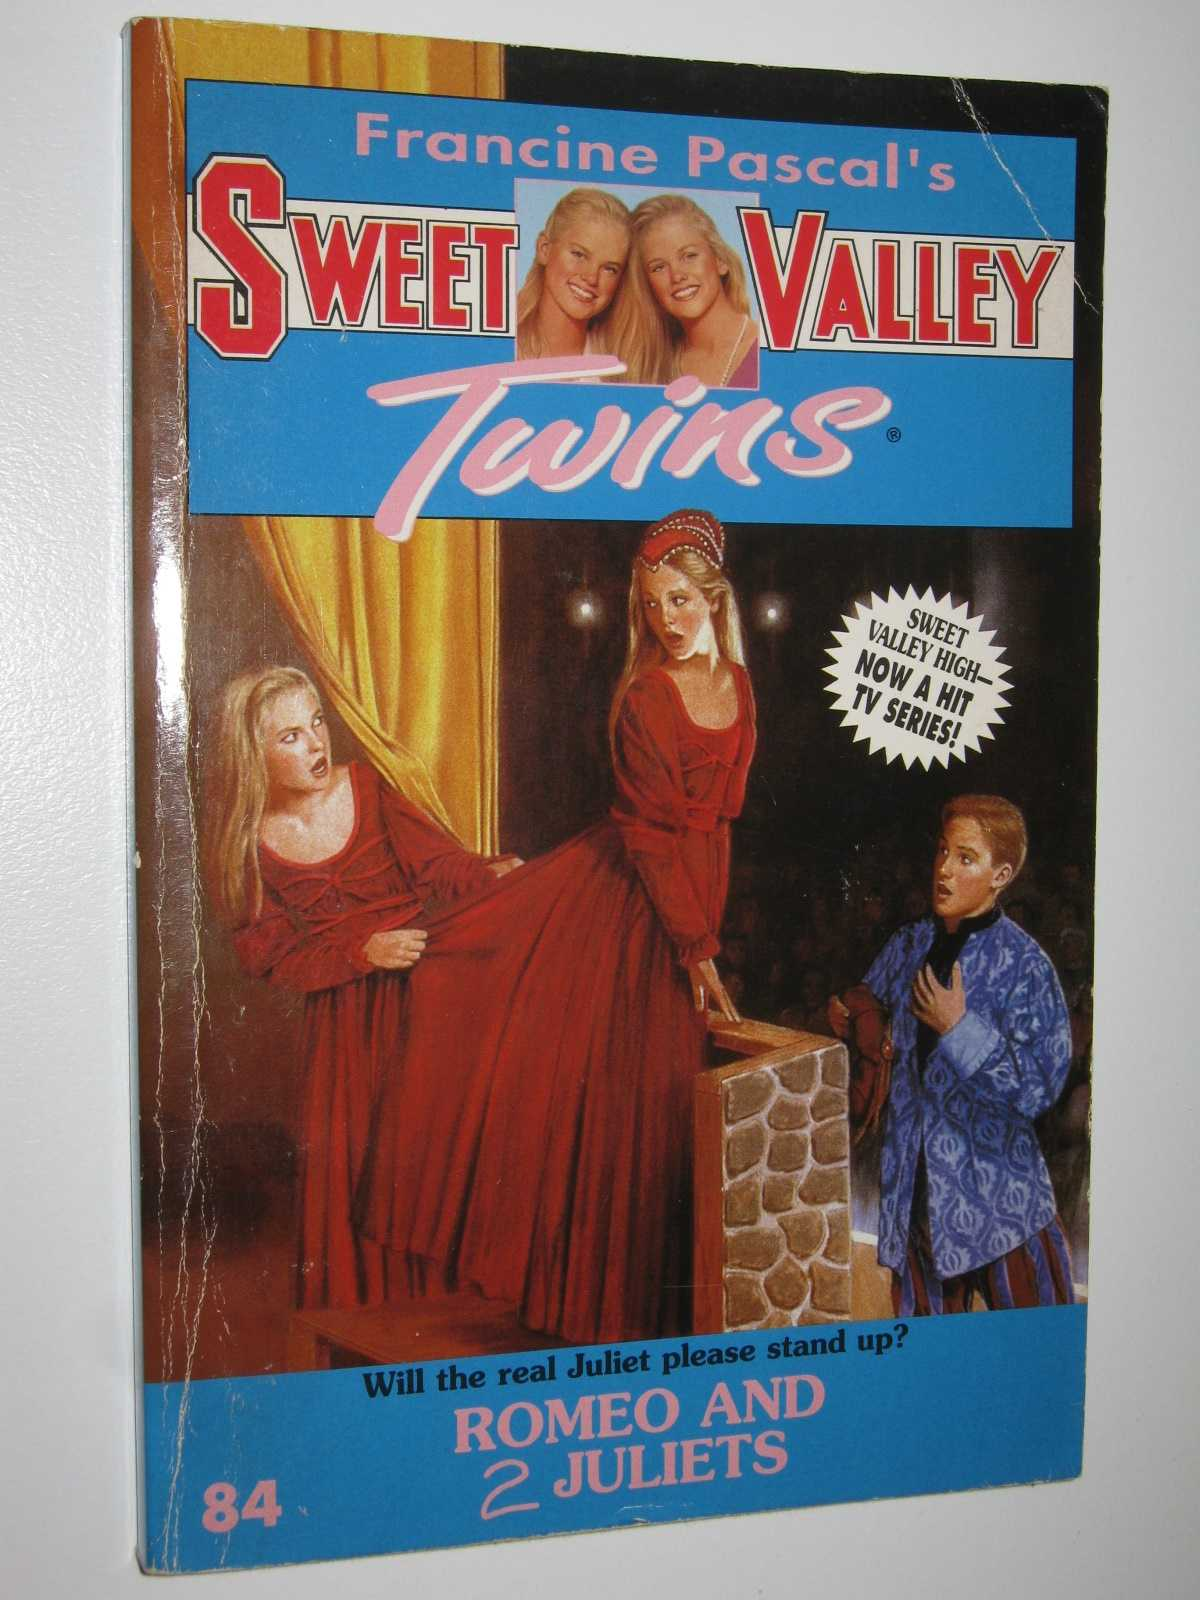 Image for Romeo and 2 Juliets - Sweet Valley Twins Series #84